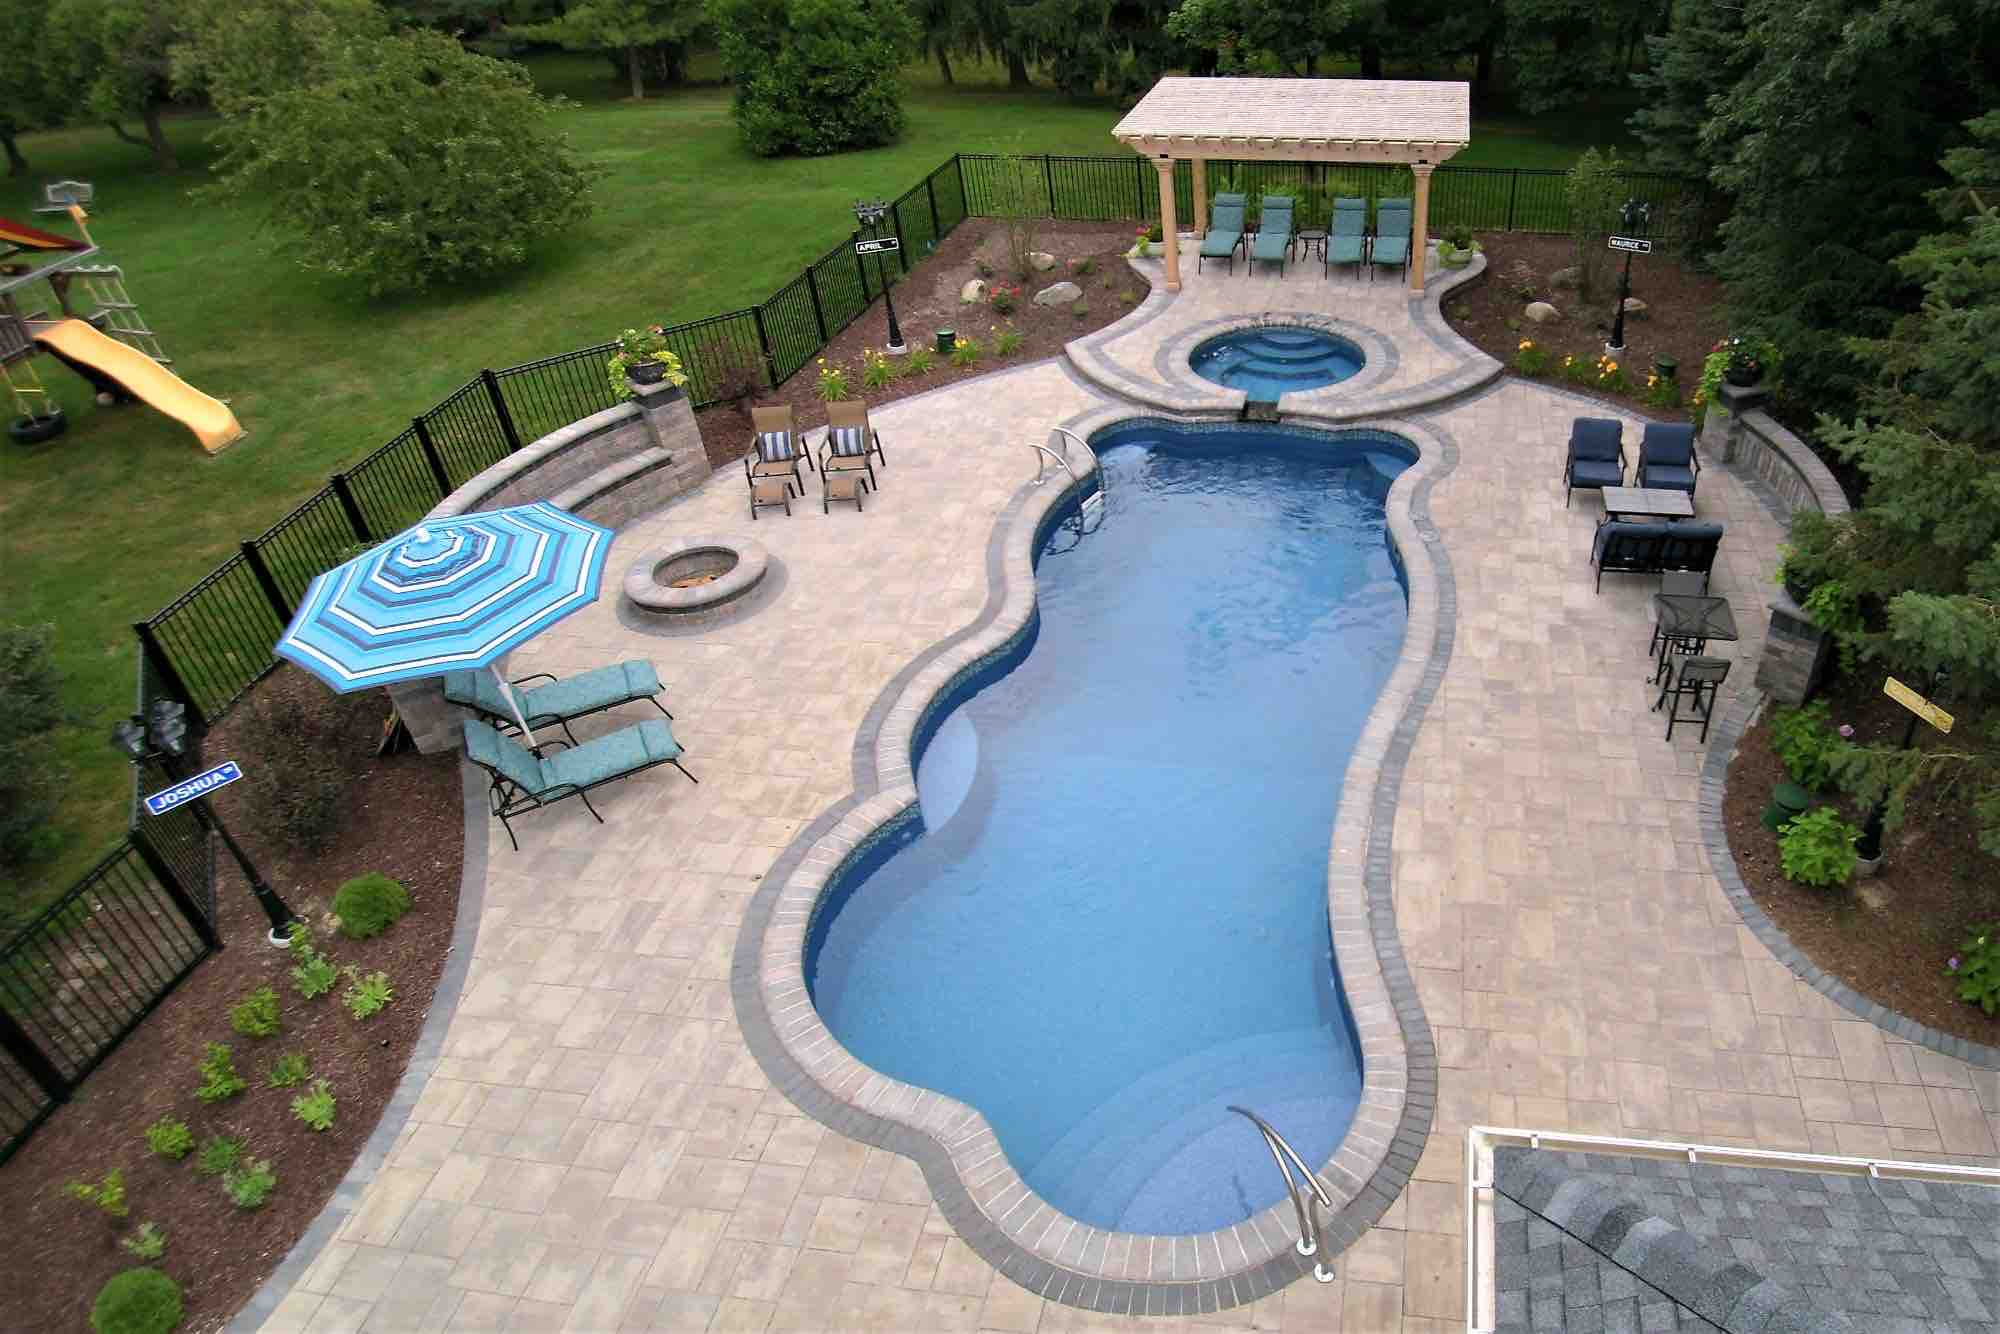 aerial view of pool, hot tube, fire pit and poolside lounge